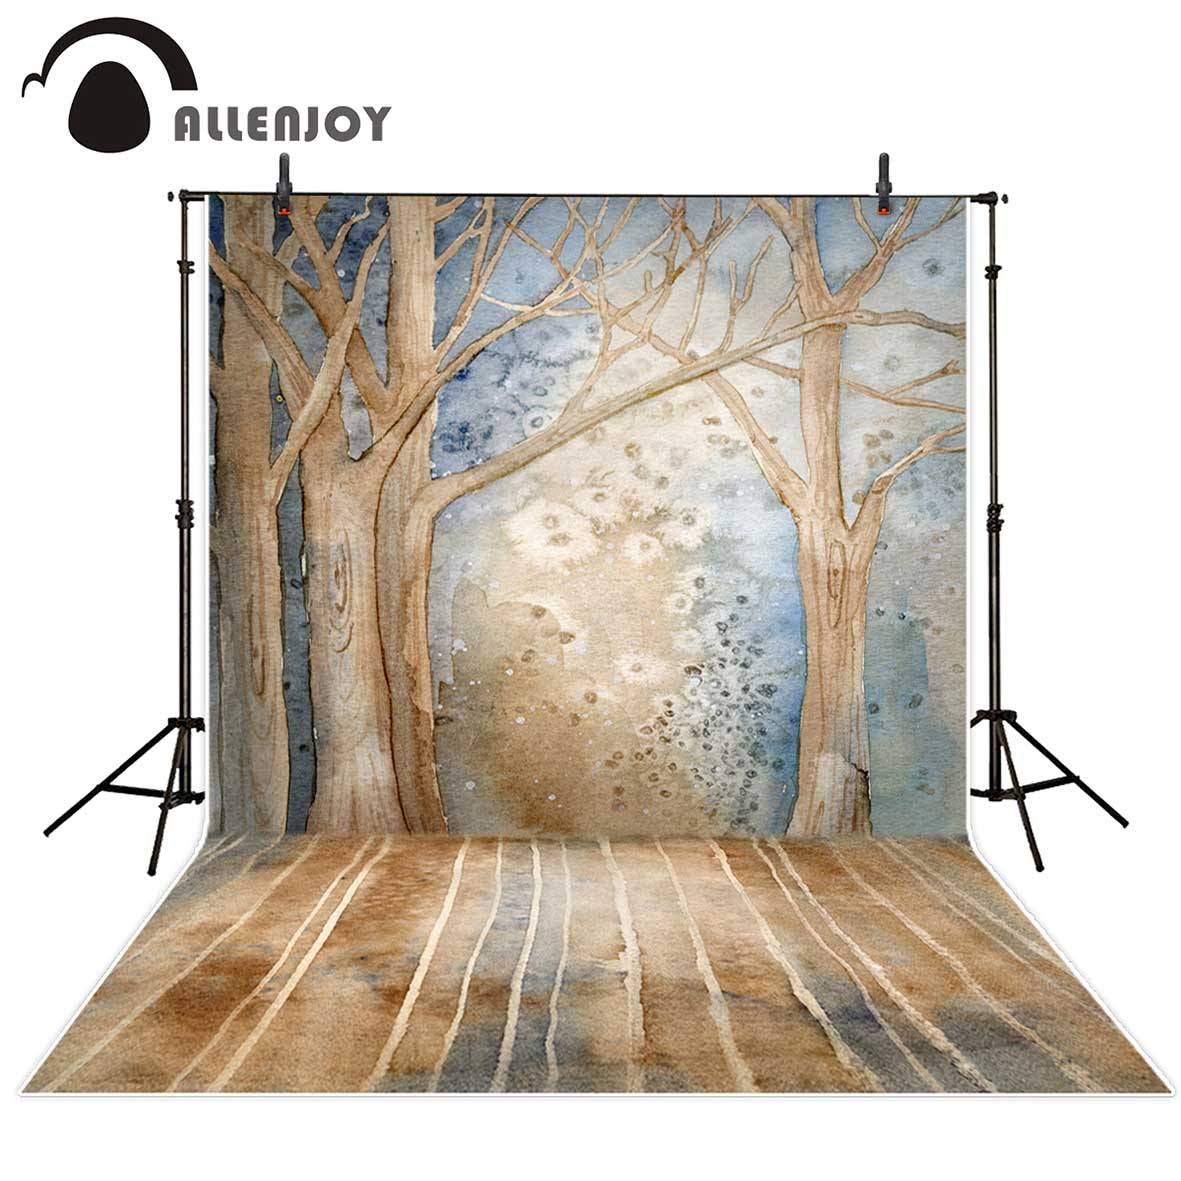 Allenjoy photography background Vintage trees winter snow oil painting style backdrop Photo background studio camera fotografica